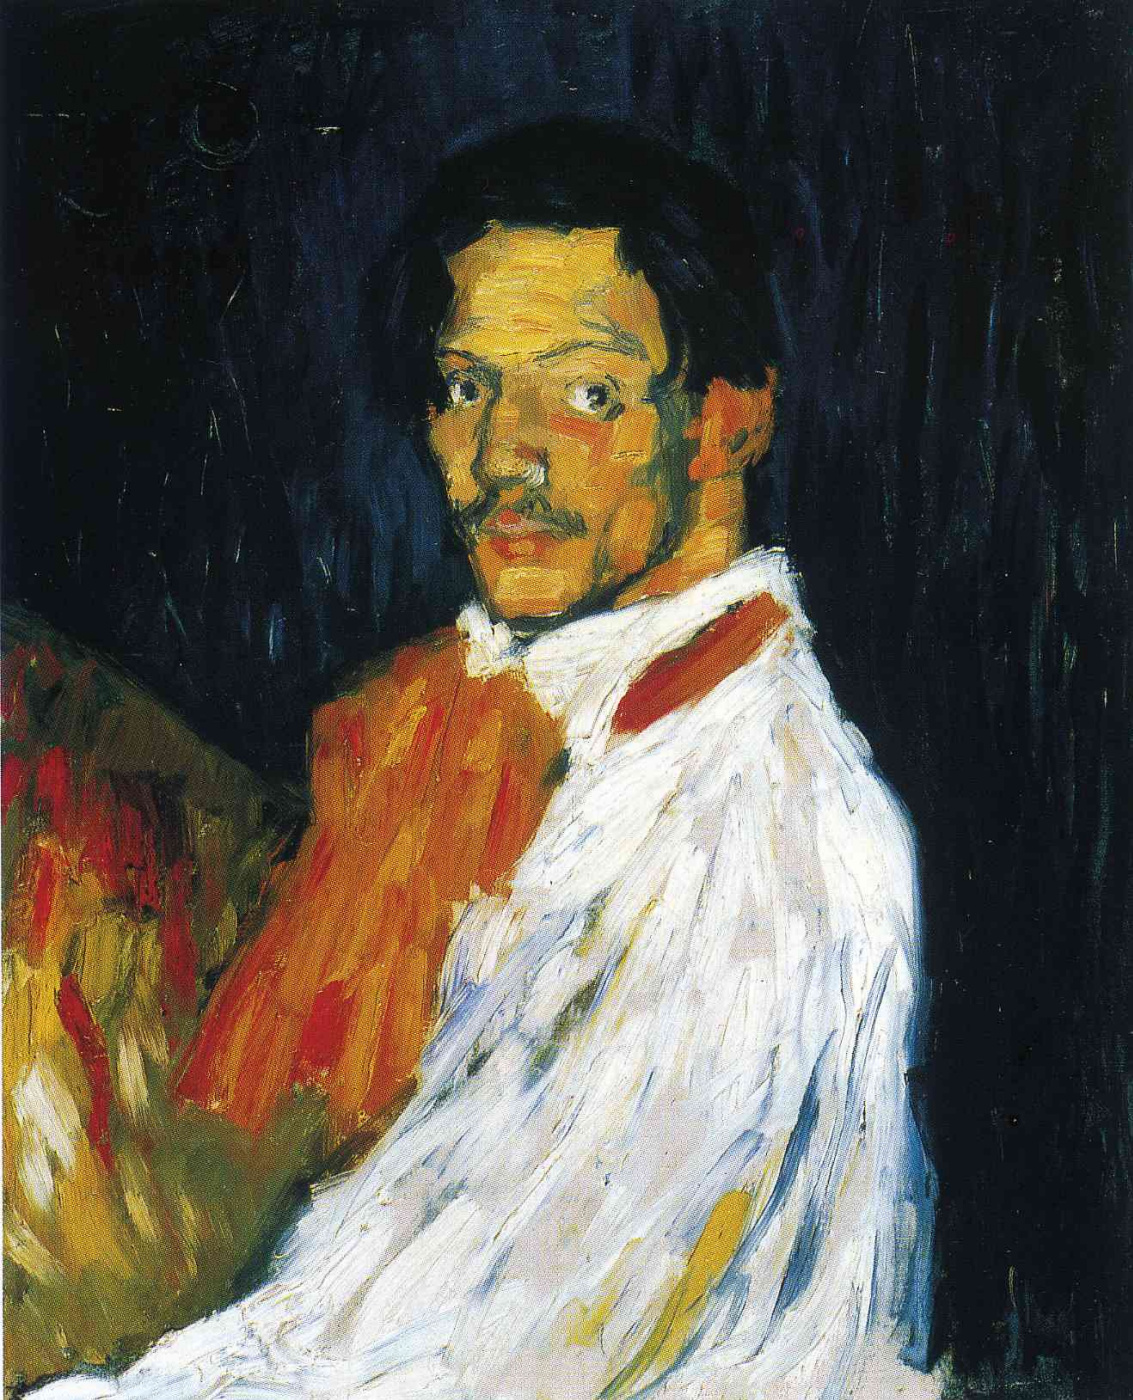 Pablo Picasso. I Picasso (portrait of a man in a white shirt)